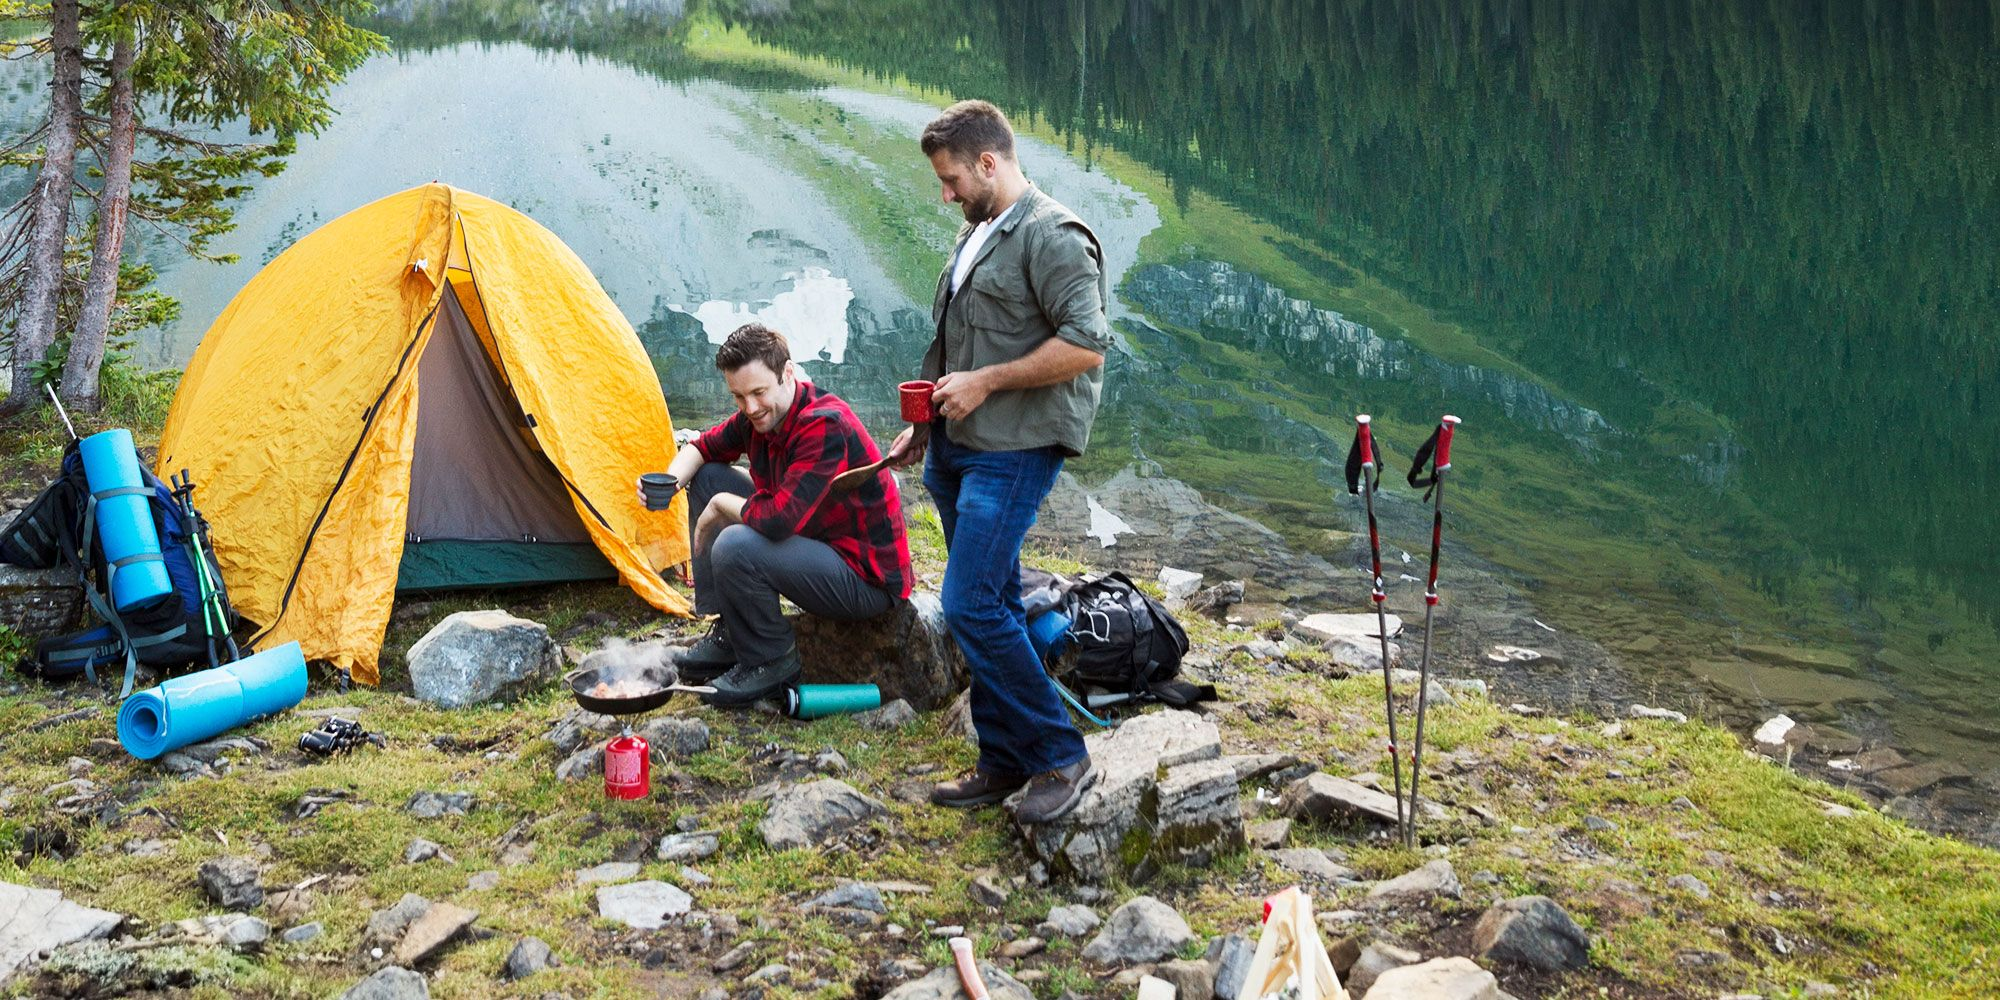 12 Camping Essentials You'll Need for Your Next Outdoor Adventure